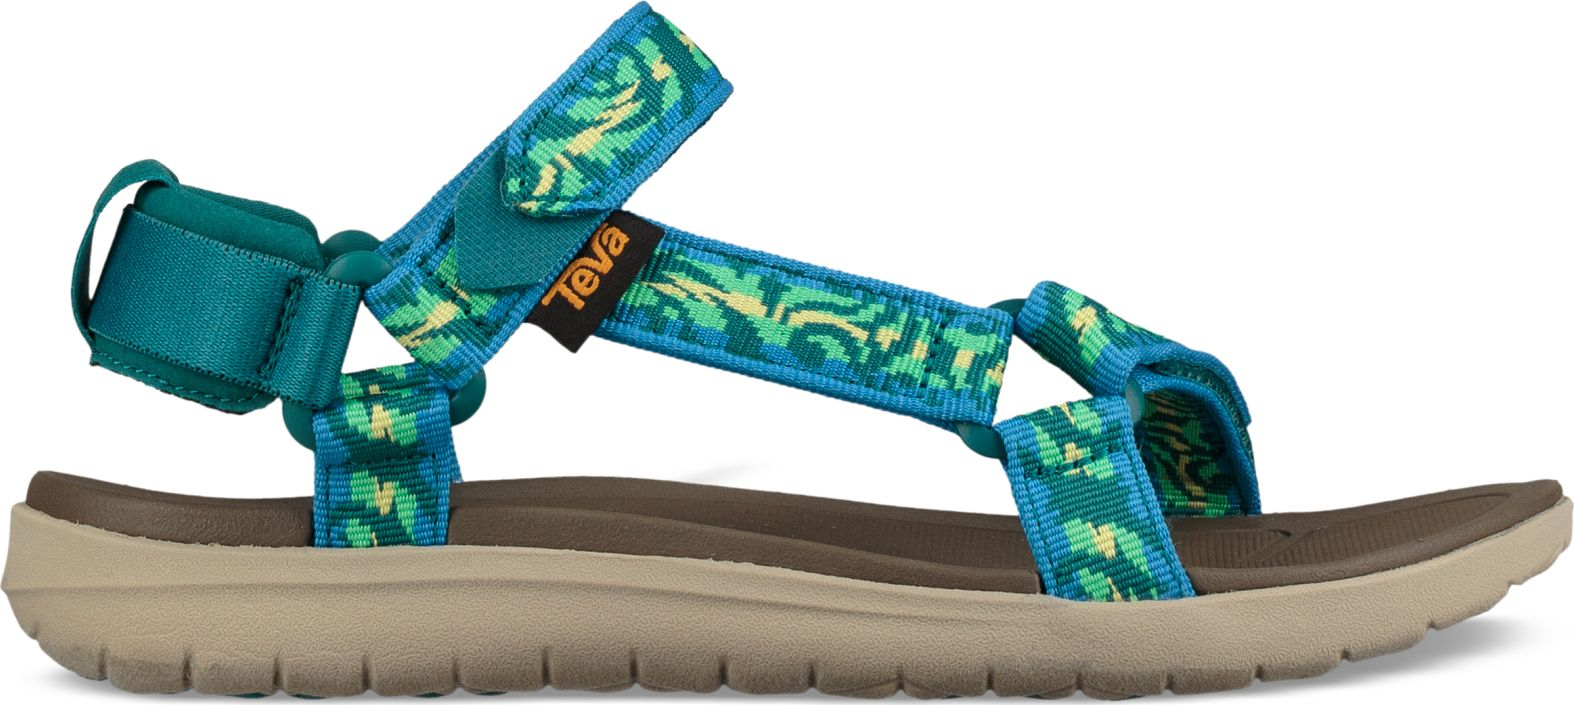 Teva Sanborn Universal Women's Thena Deep Lake Multi 41